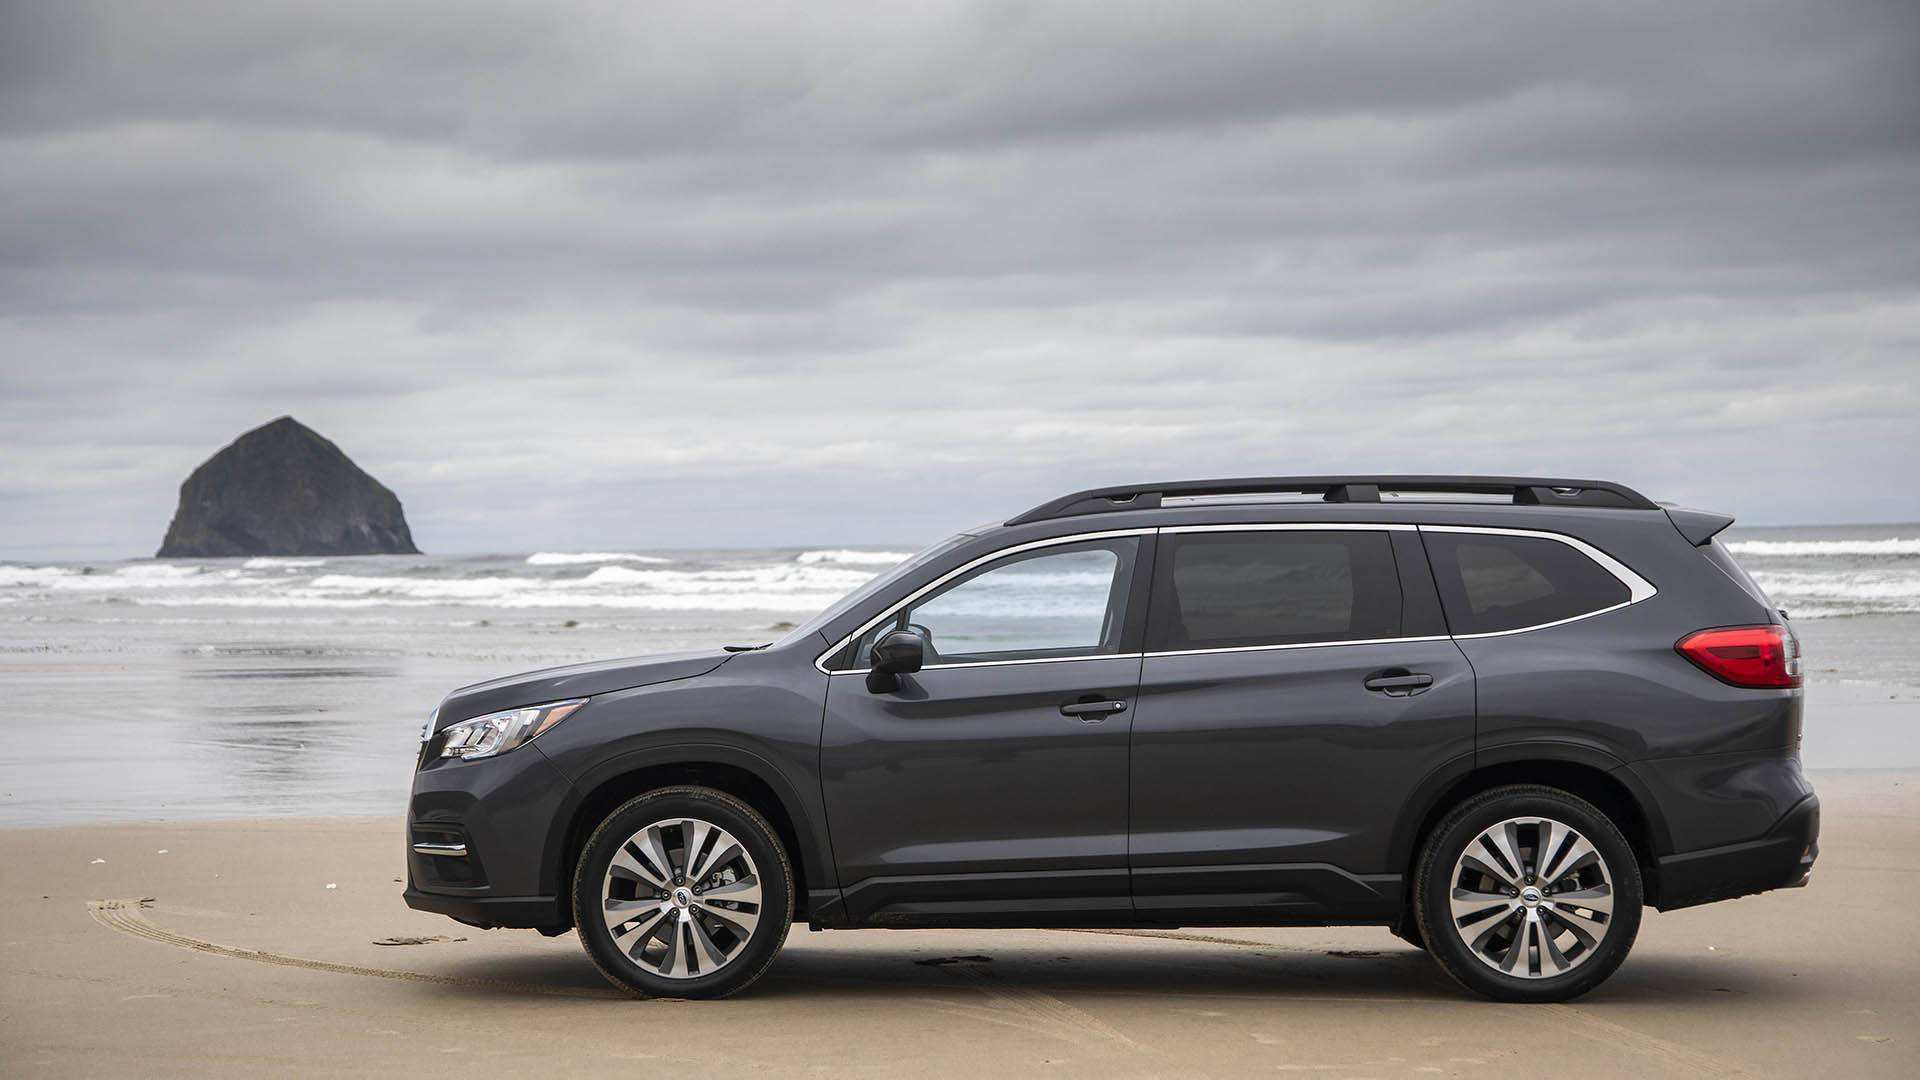 64 The Best 2019 Subaru Ascent News Redesign And Review